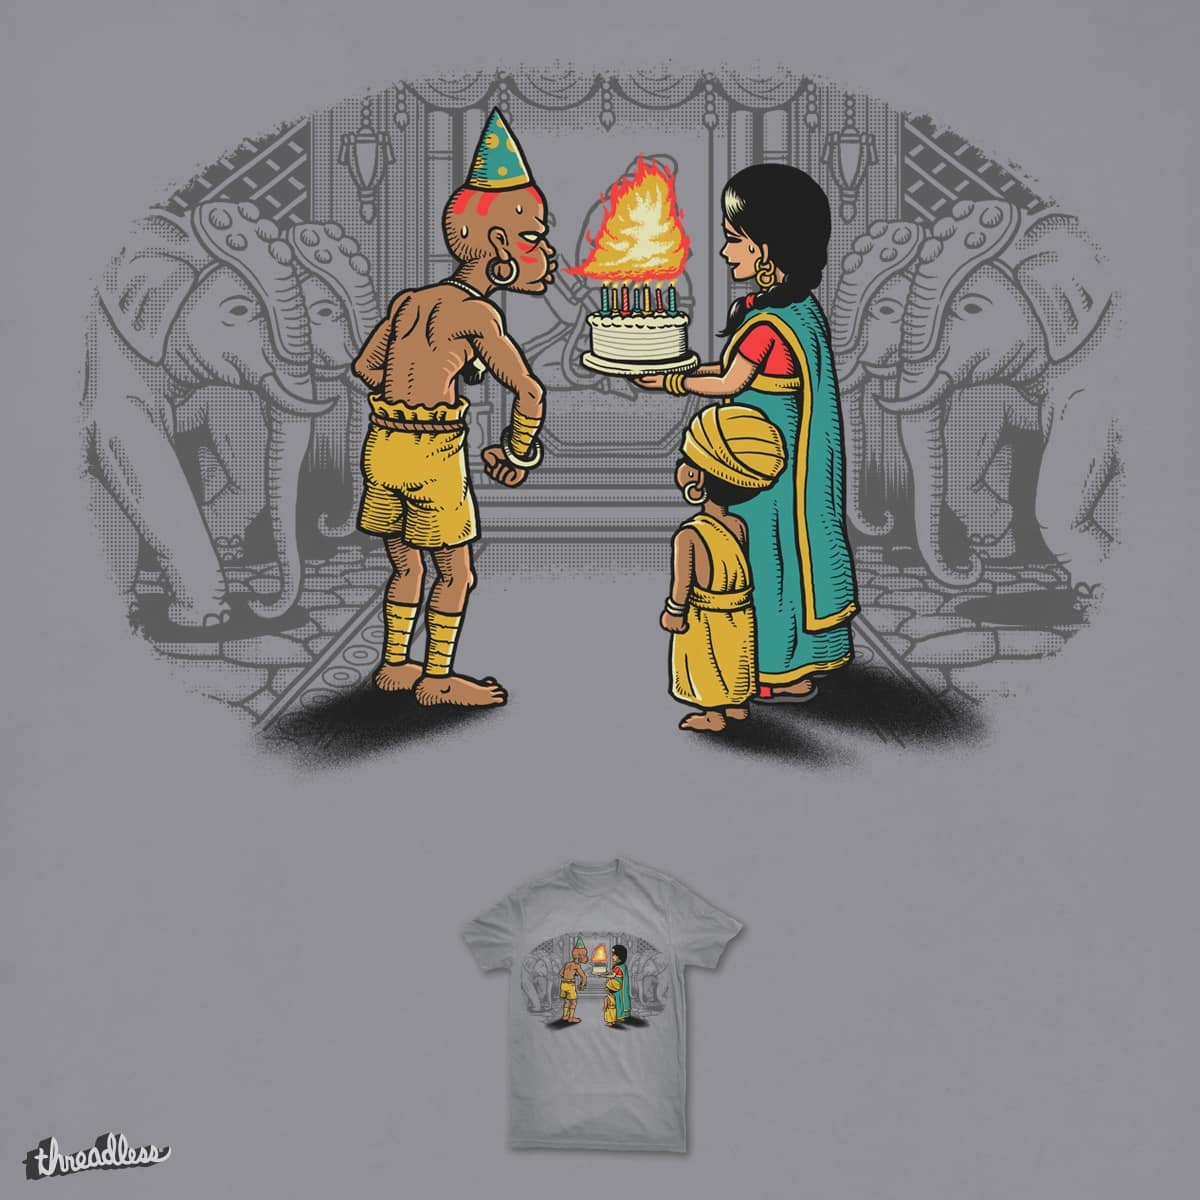 I Can't Blow Out The Candles by ben chen on Threadless